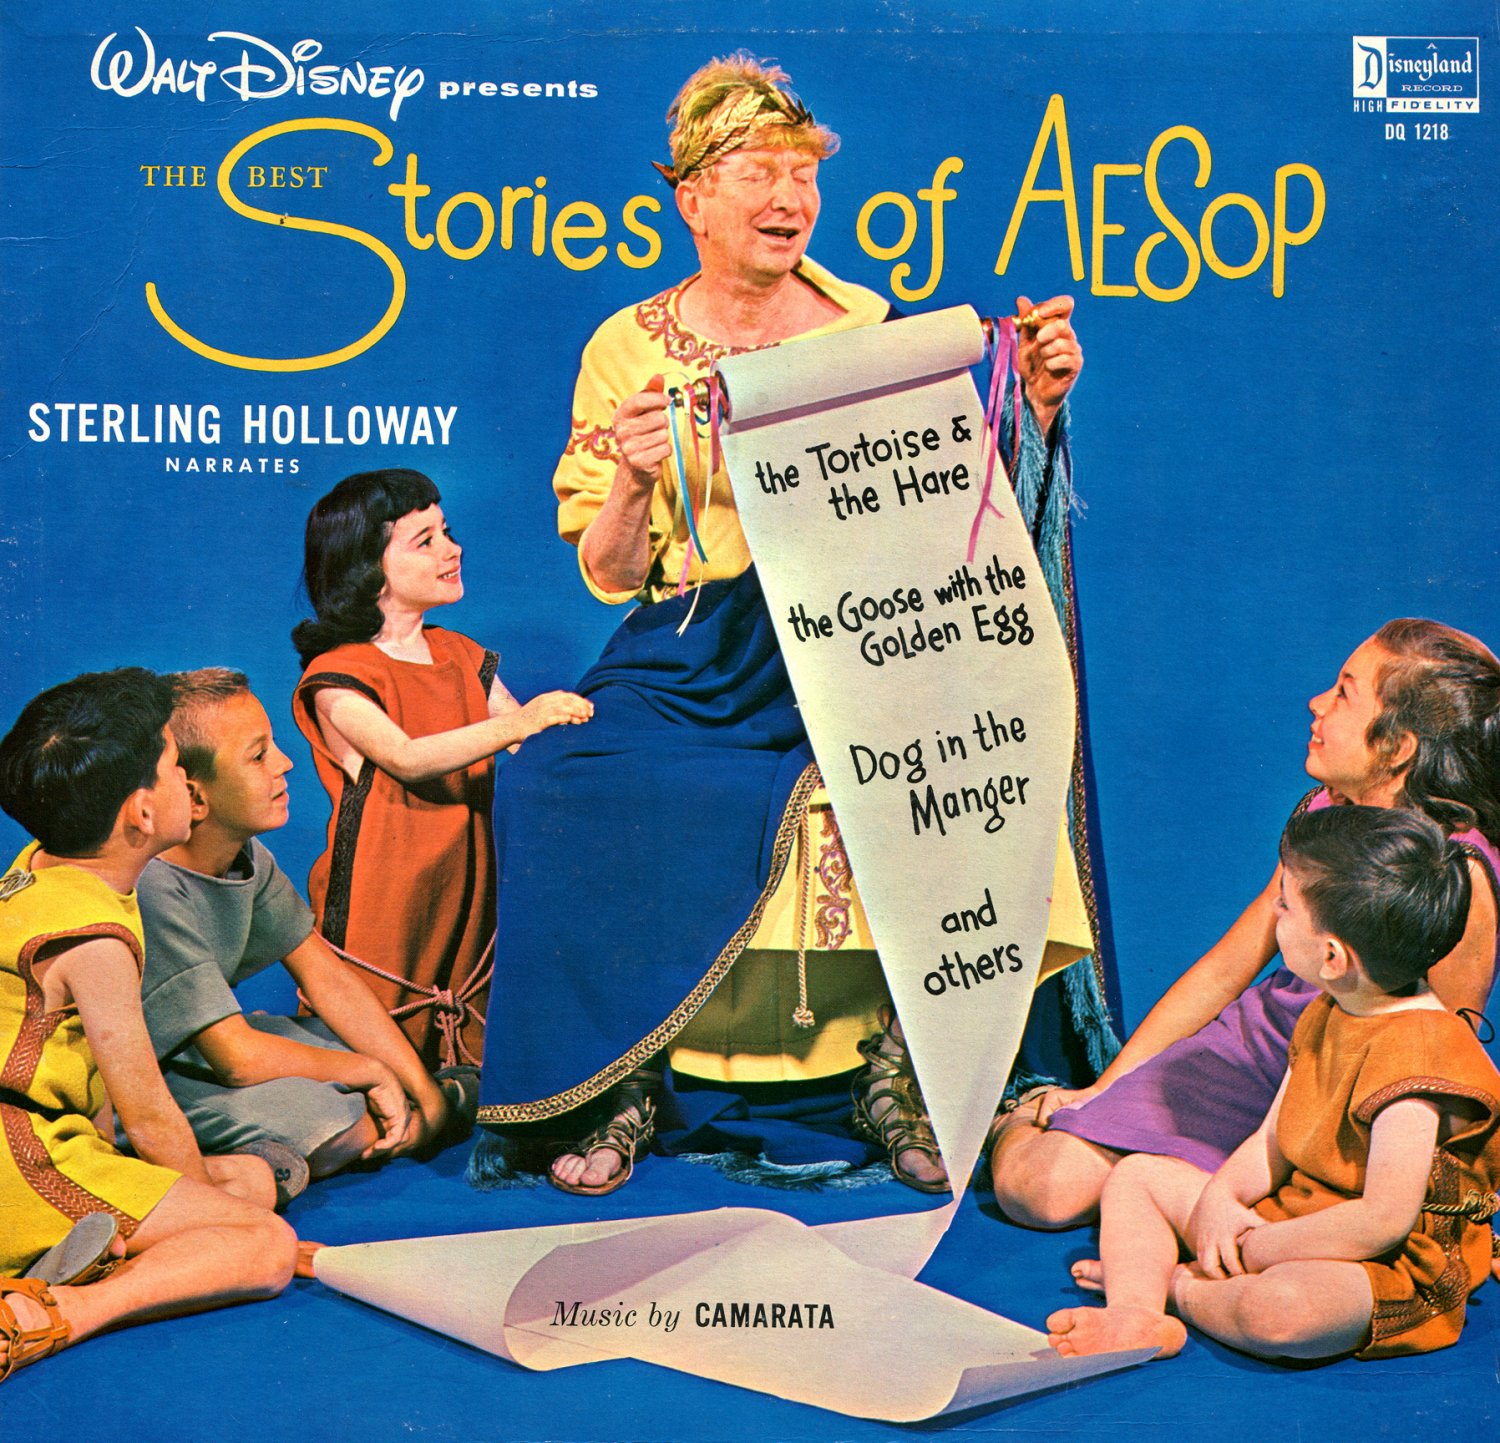 The Best Stories Of Aesop - Disneyland Story Soundtrack LP/CD